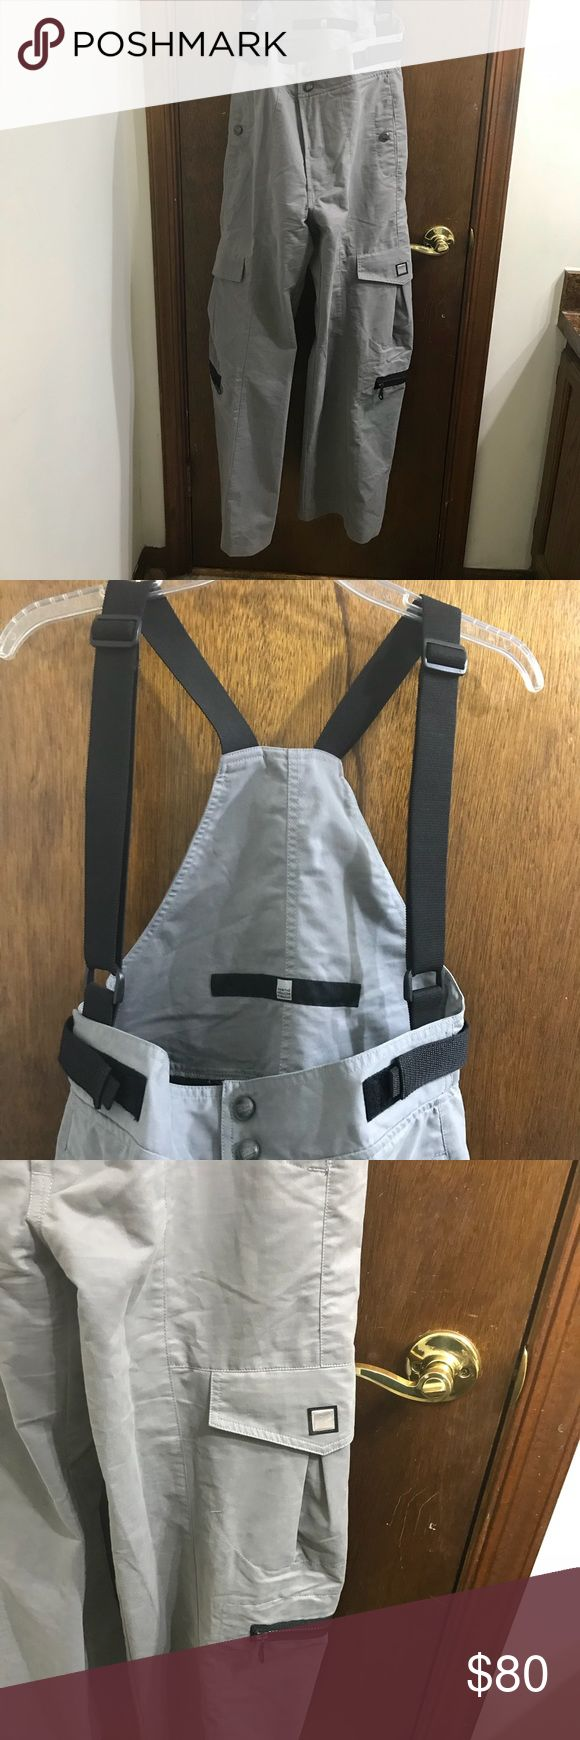 """Marithe Francois Girbaud Grey Suspender Jumpsuit Marithe Francois Girbaud Women's Grey Suspender Jumpsuit Size 6 Velcro waist  65% cotton 35% poly Zipper fly With snap buttons Waist 15.5"""" across Rise 13"""" Inseam 30.5"""" Bottom leg opening 11.5"""" Excellent Condition girbaud Pants"""